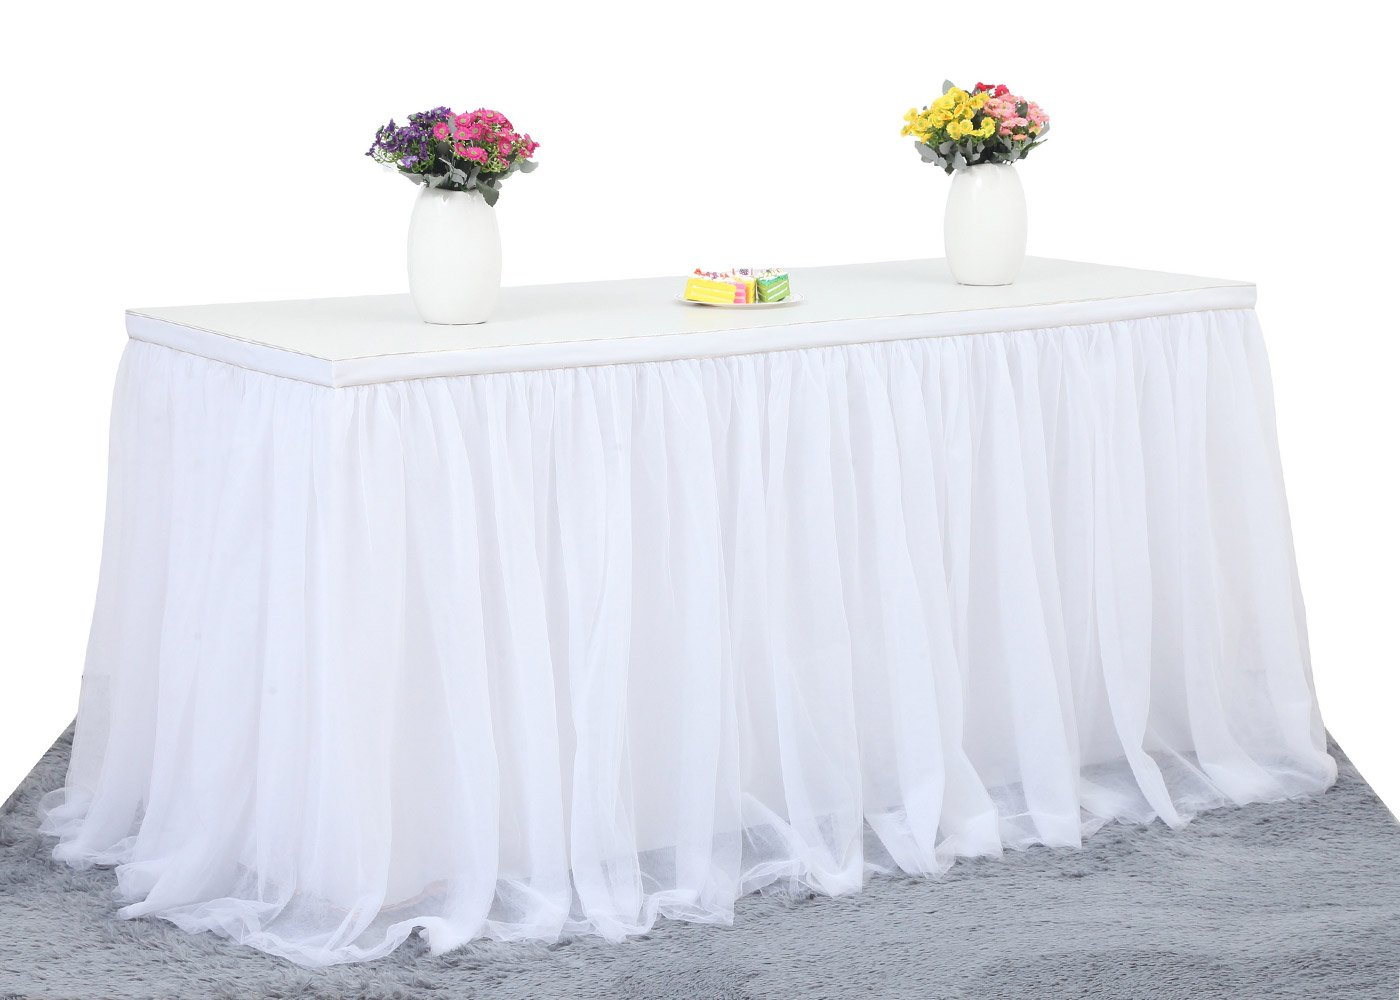 6FT White Tulle Table Skirt High-end Gold Brim 3 Layer Round or Rectangle Tables Mesh Tutu Table Skirting Fluffy and Elegant for Baby Show,Birthday Party,Wedding Decoration.(L72in, H30in) by CO-AVE